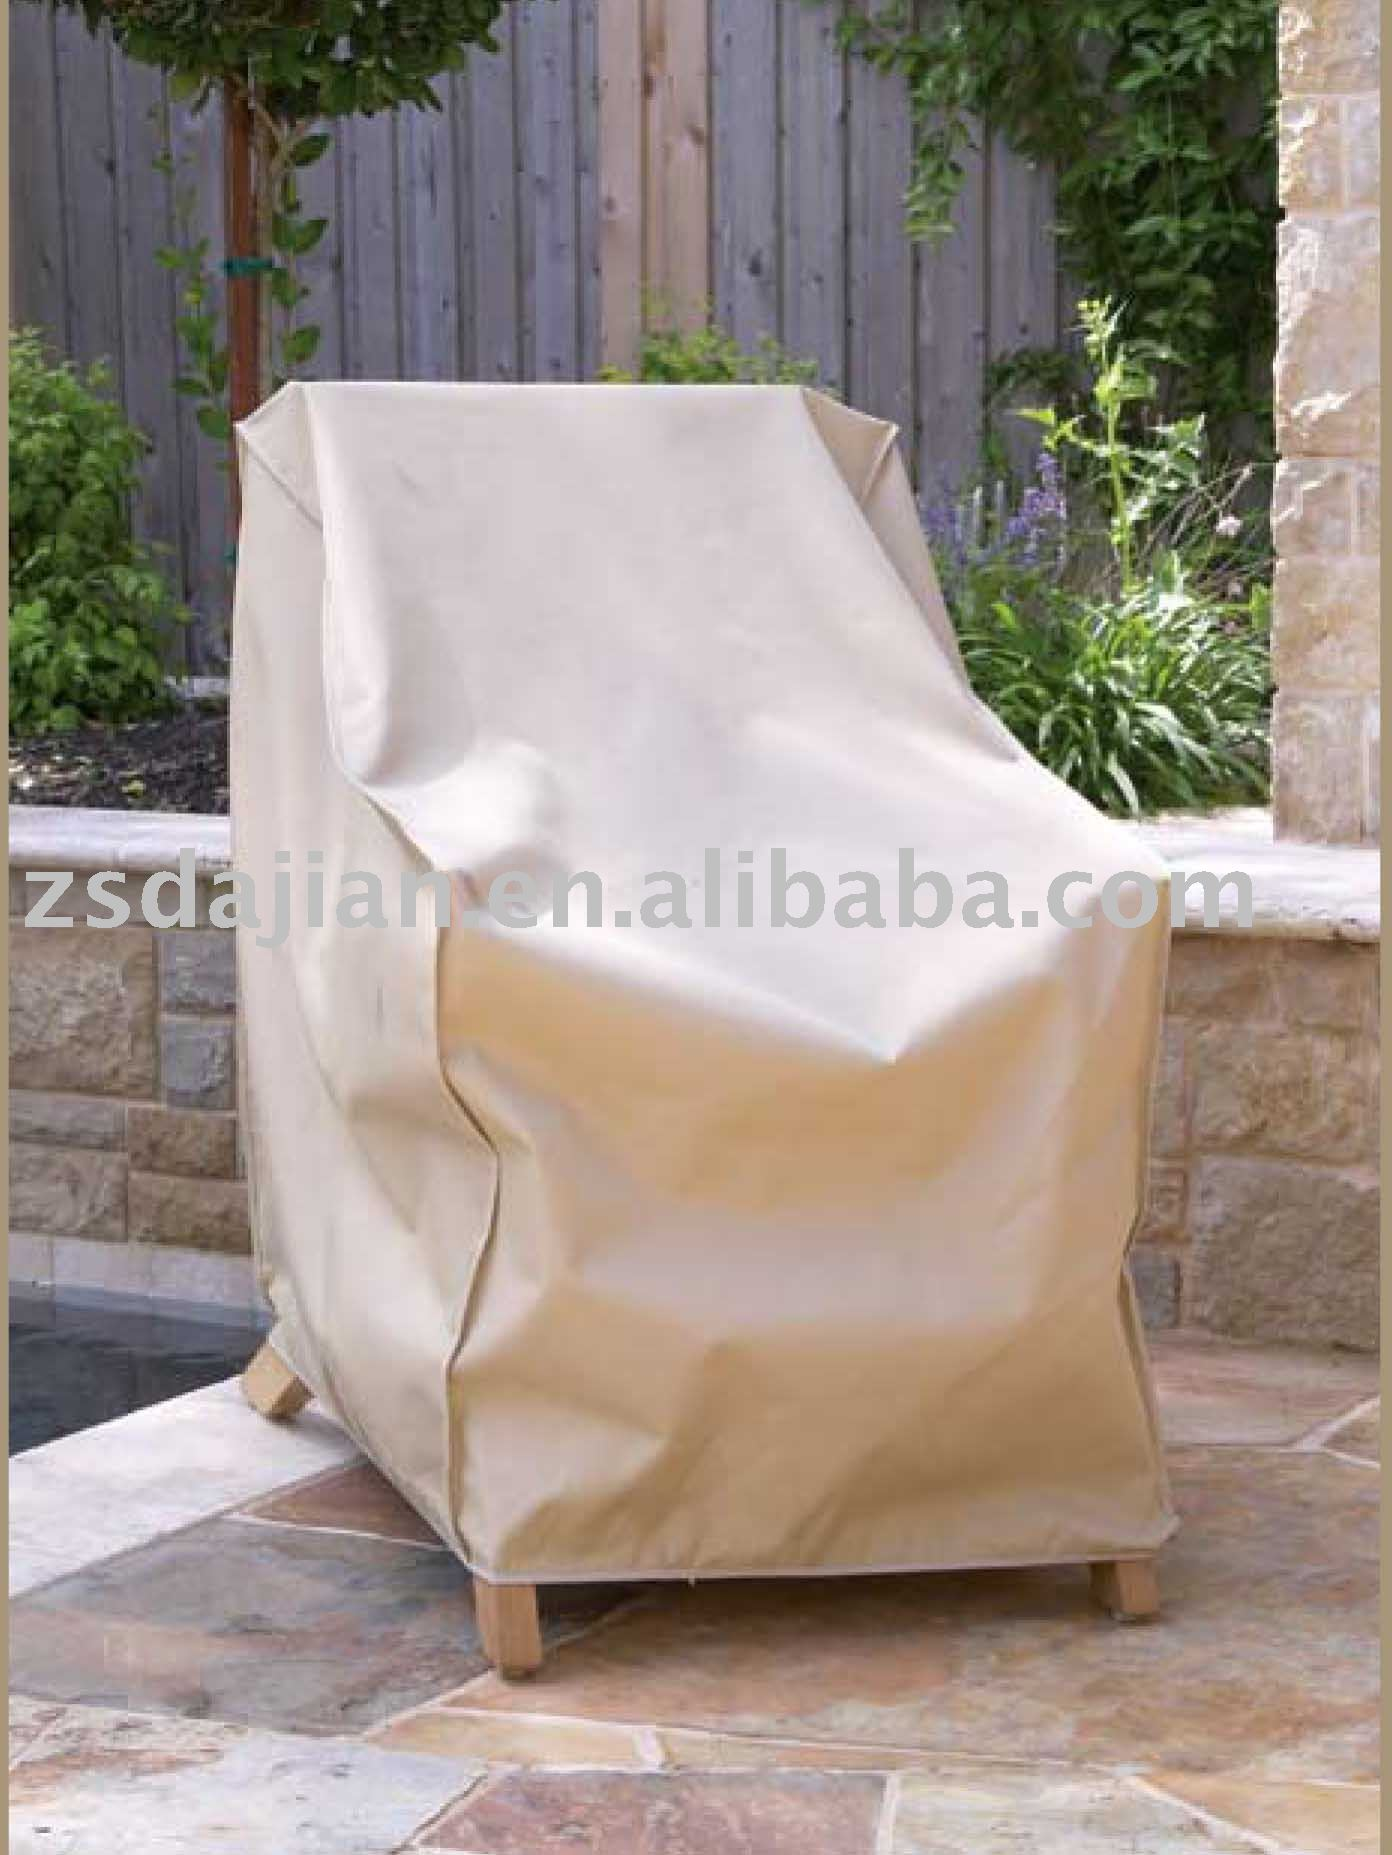 Chair Cover - outdoor furniture ; PVB/PVC w/ polyester